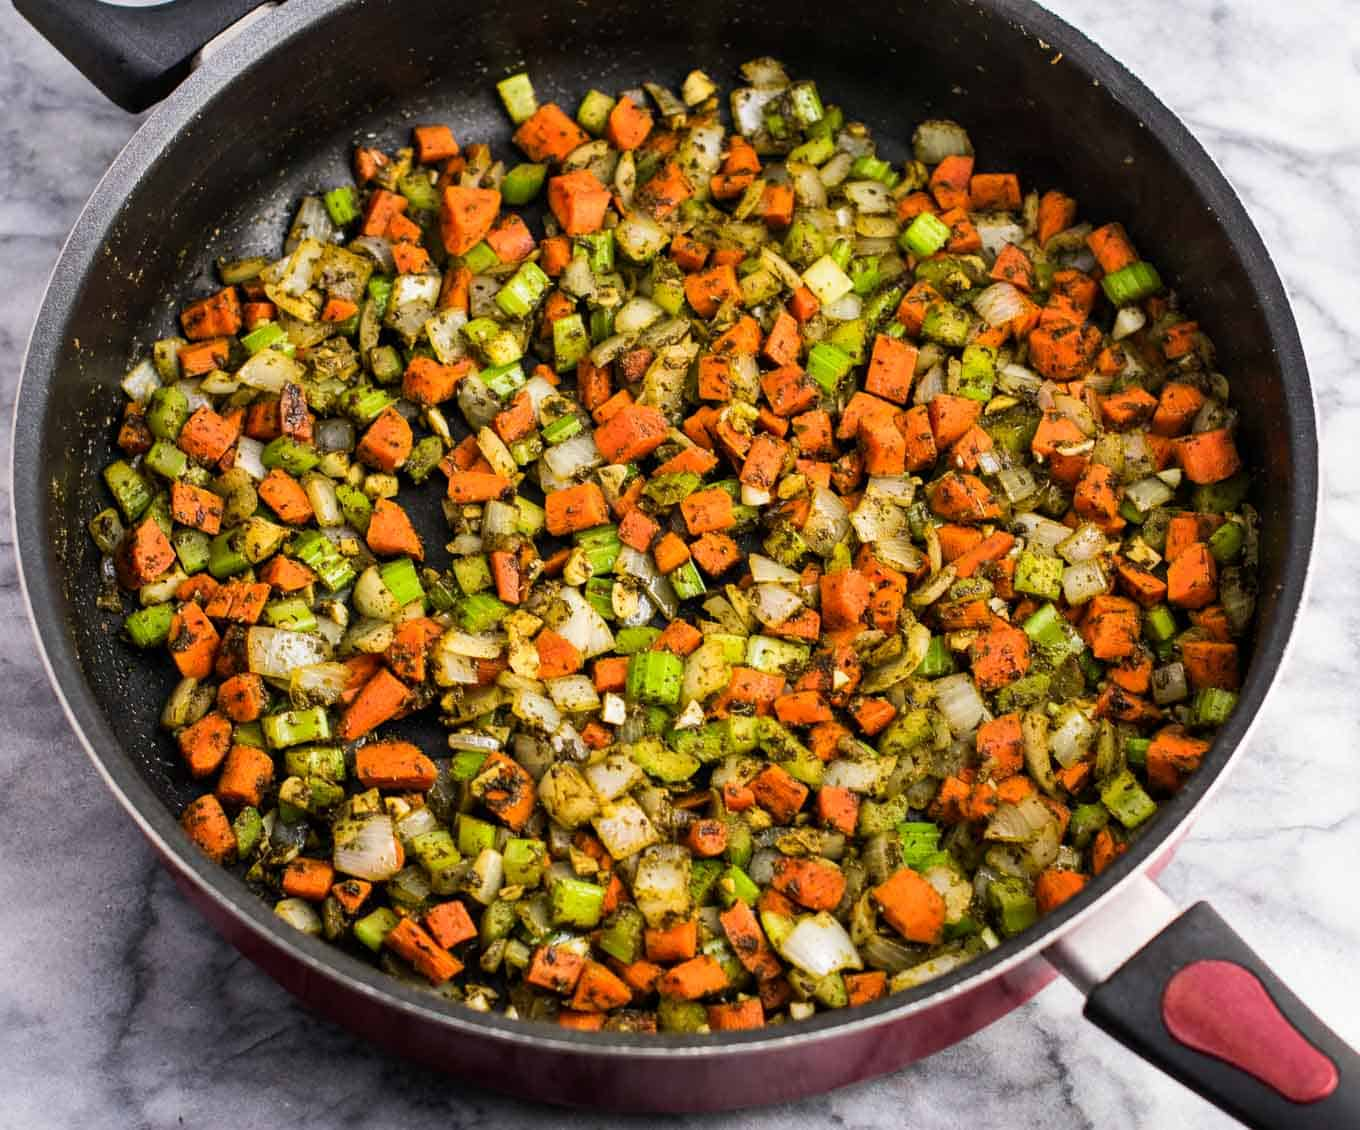 The best vegan stuffing recipe – with garlic, onion, carrots, celery, and sage. This tastes amazing and everyone loves it! #vegan #stuffing #thanksgiving #veganrecipe #vegetarian #thanksgivingstuffing #glutenfree